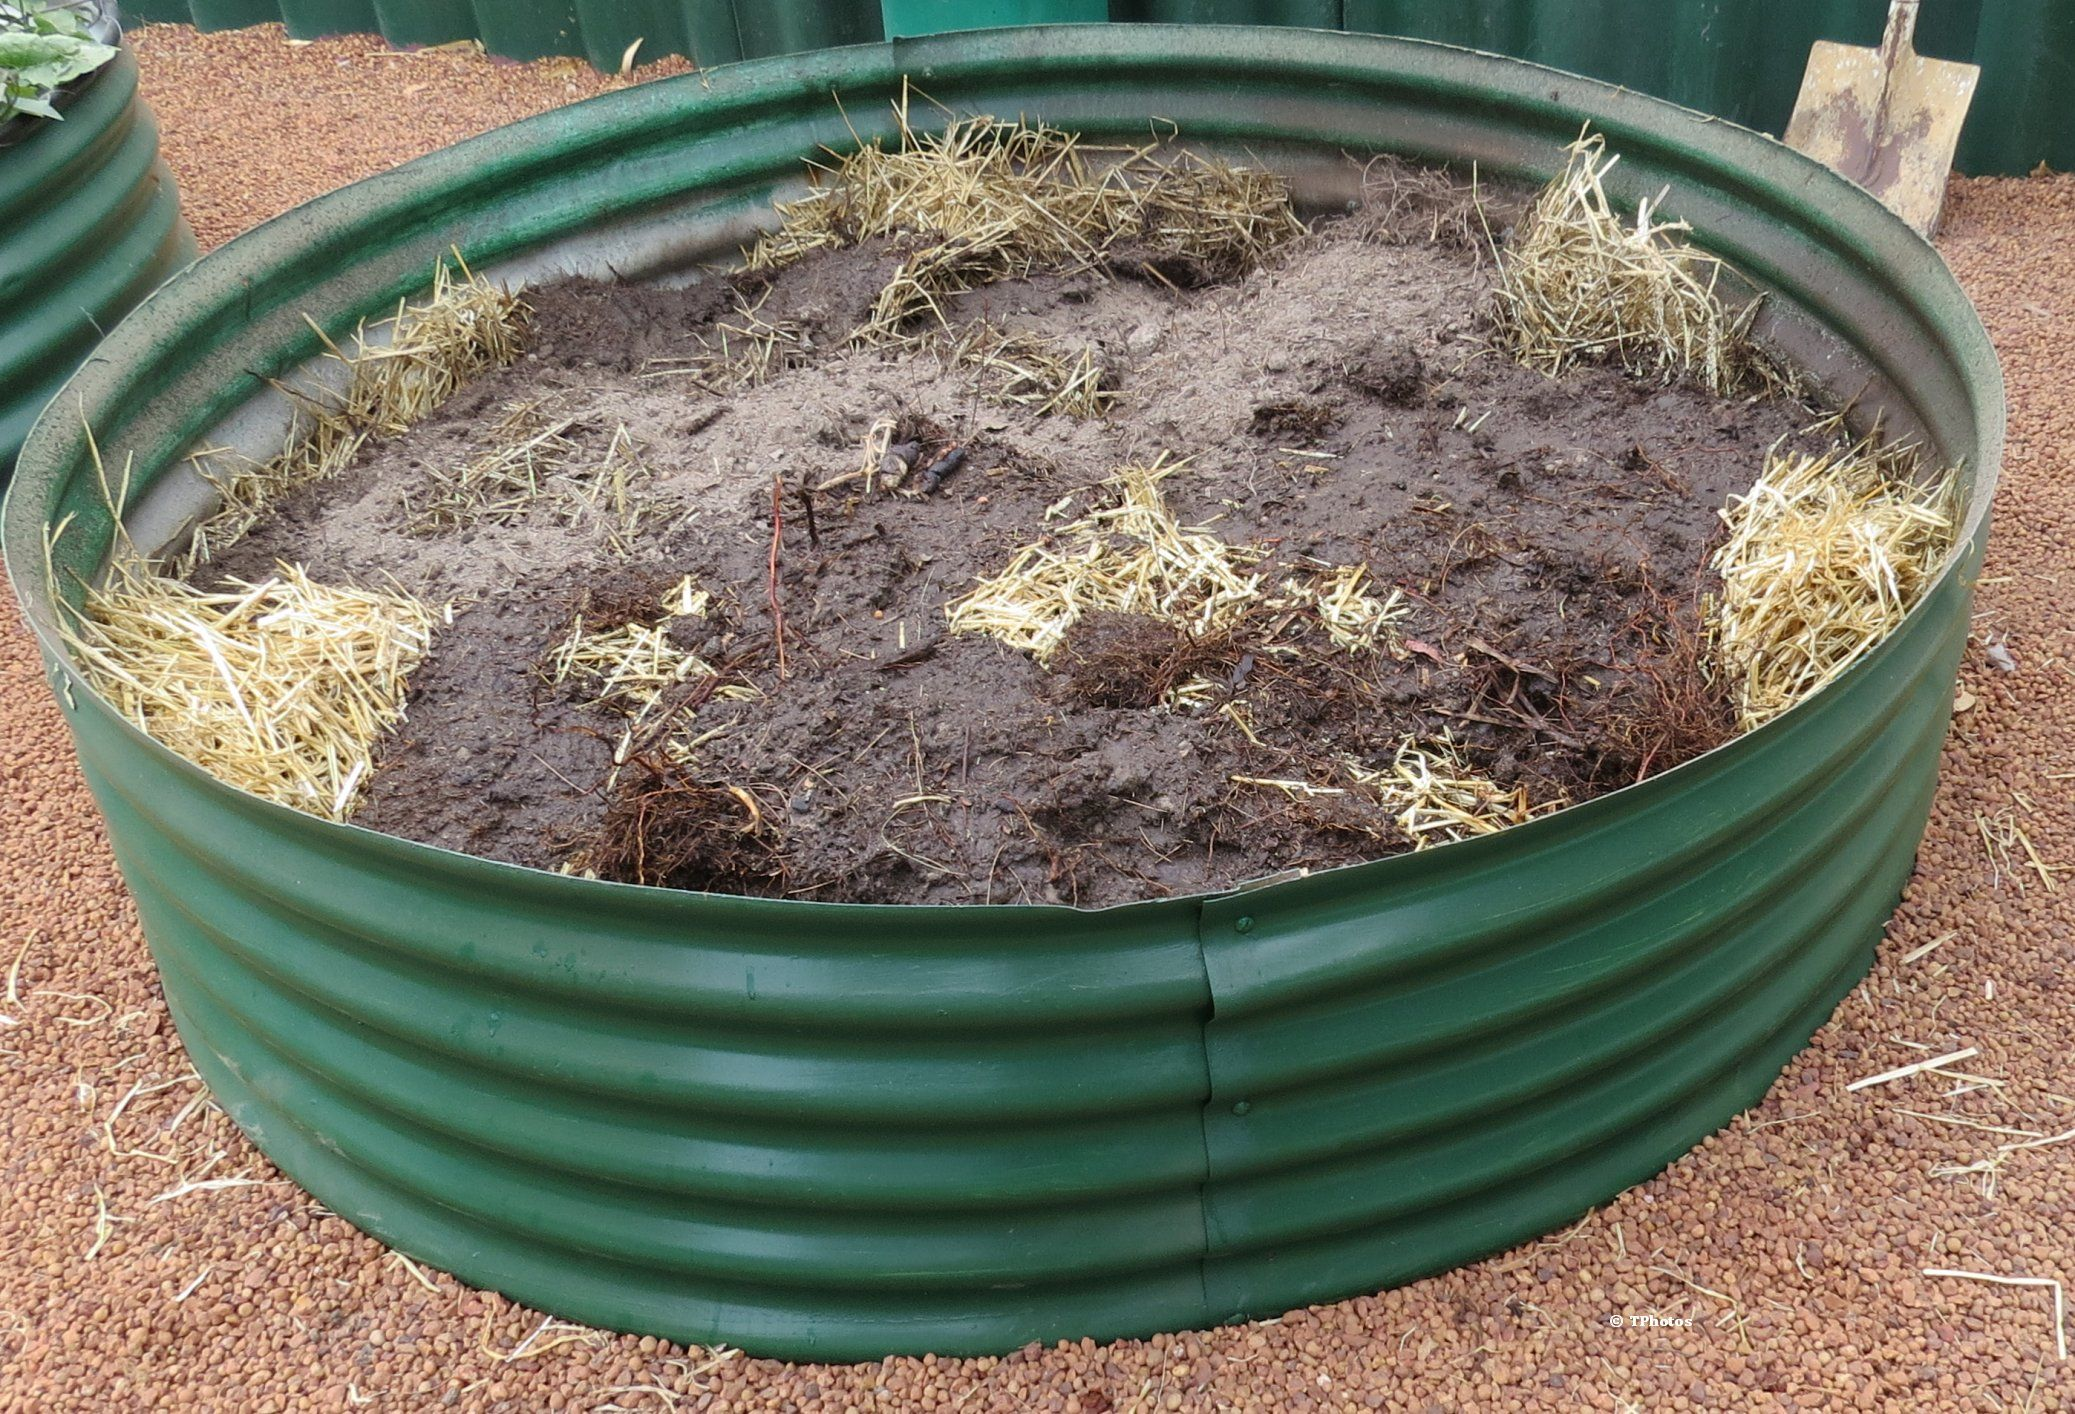 Frugal gardening great ideas for making cheap raised garden beds